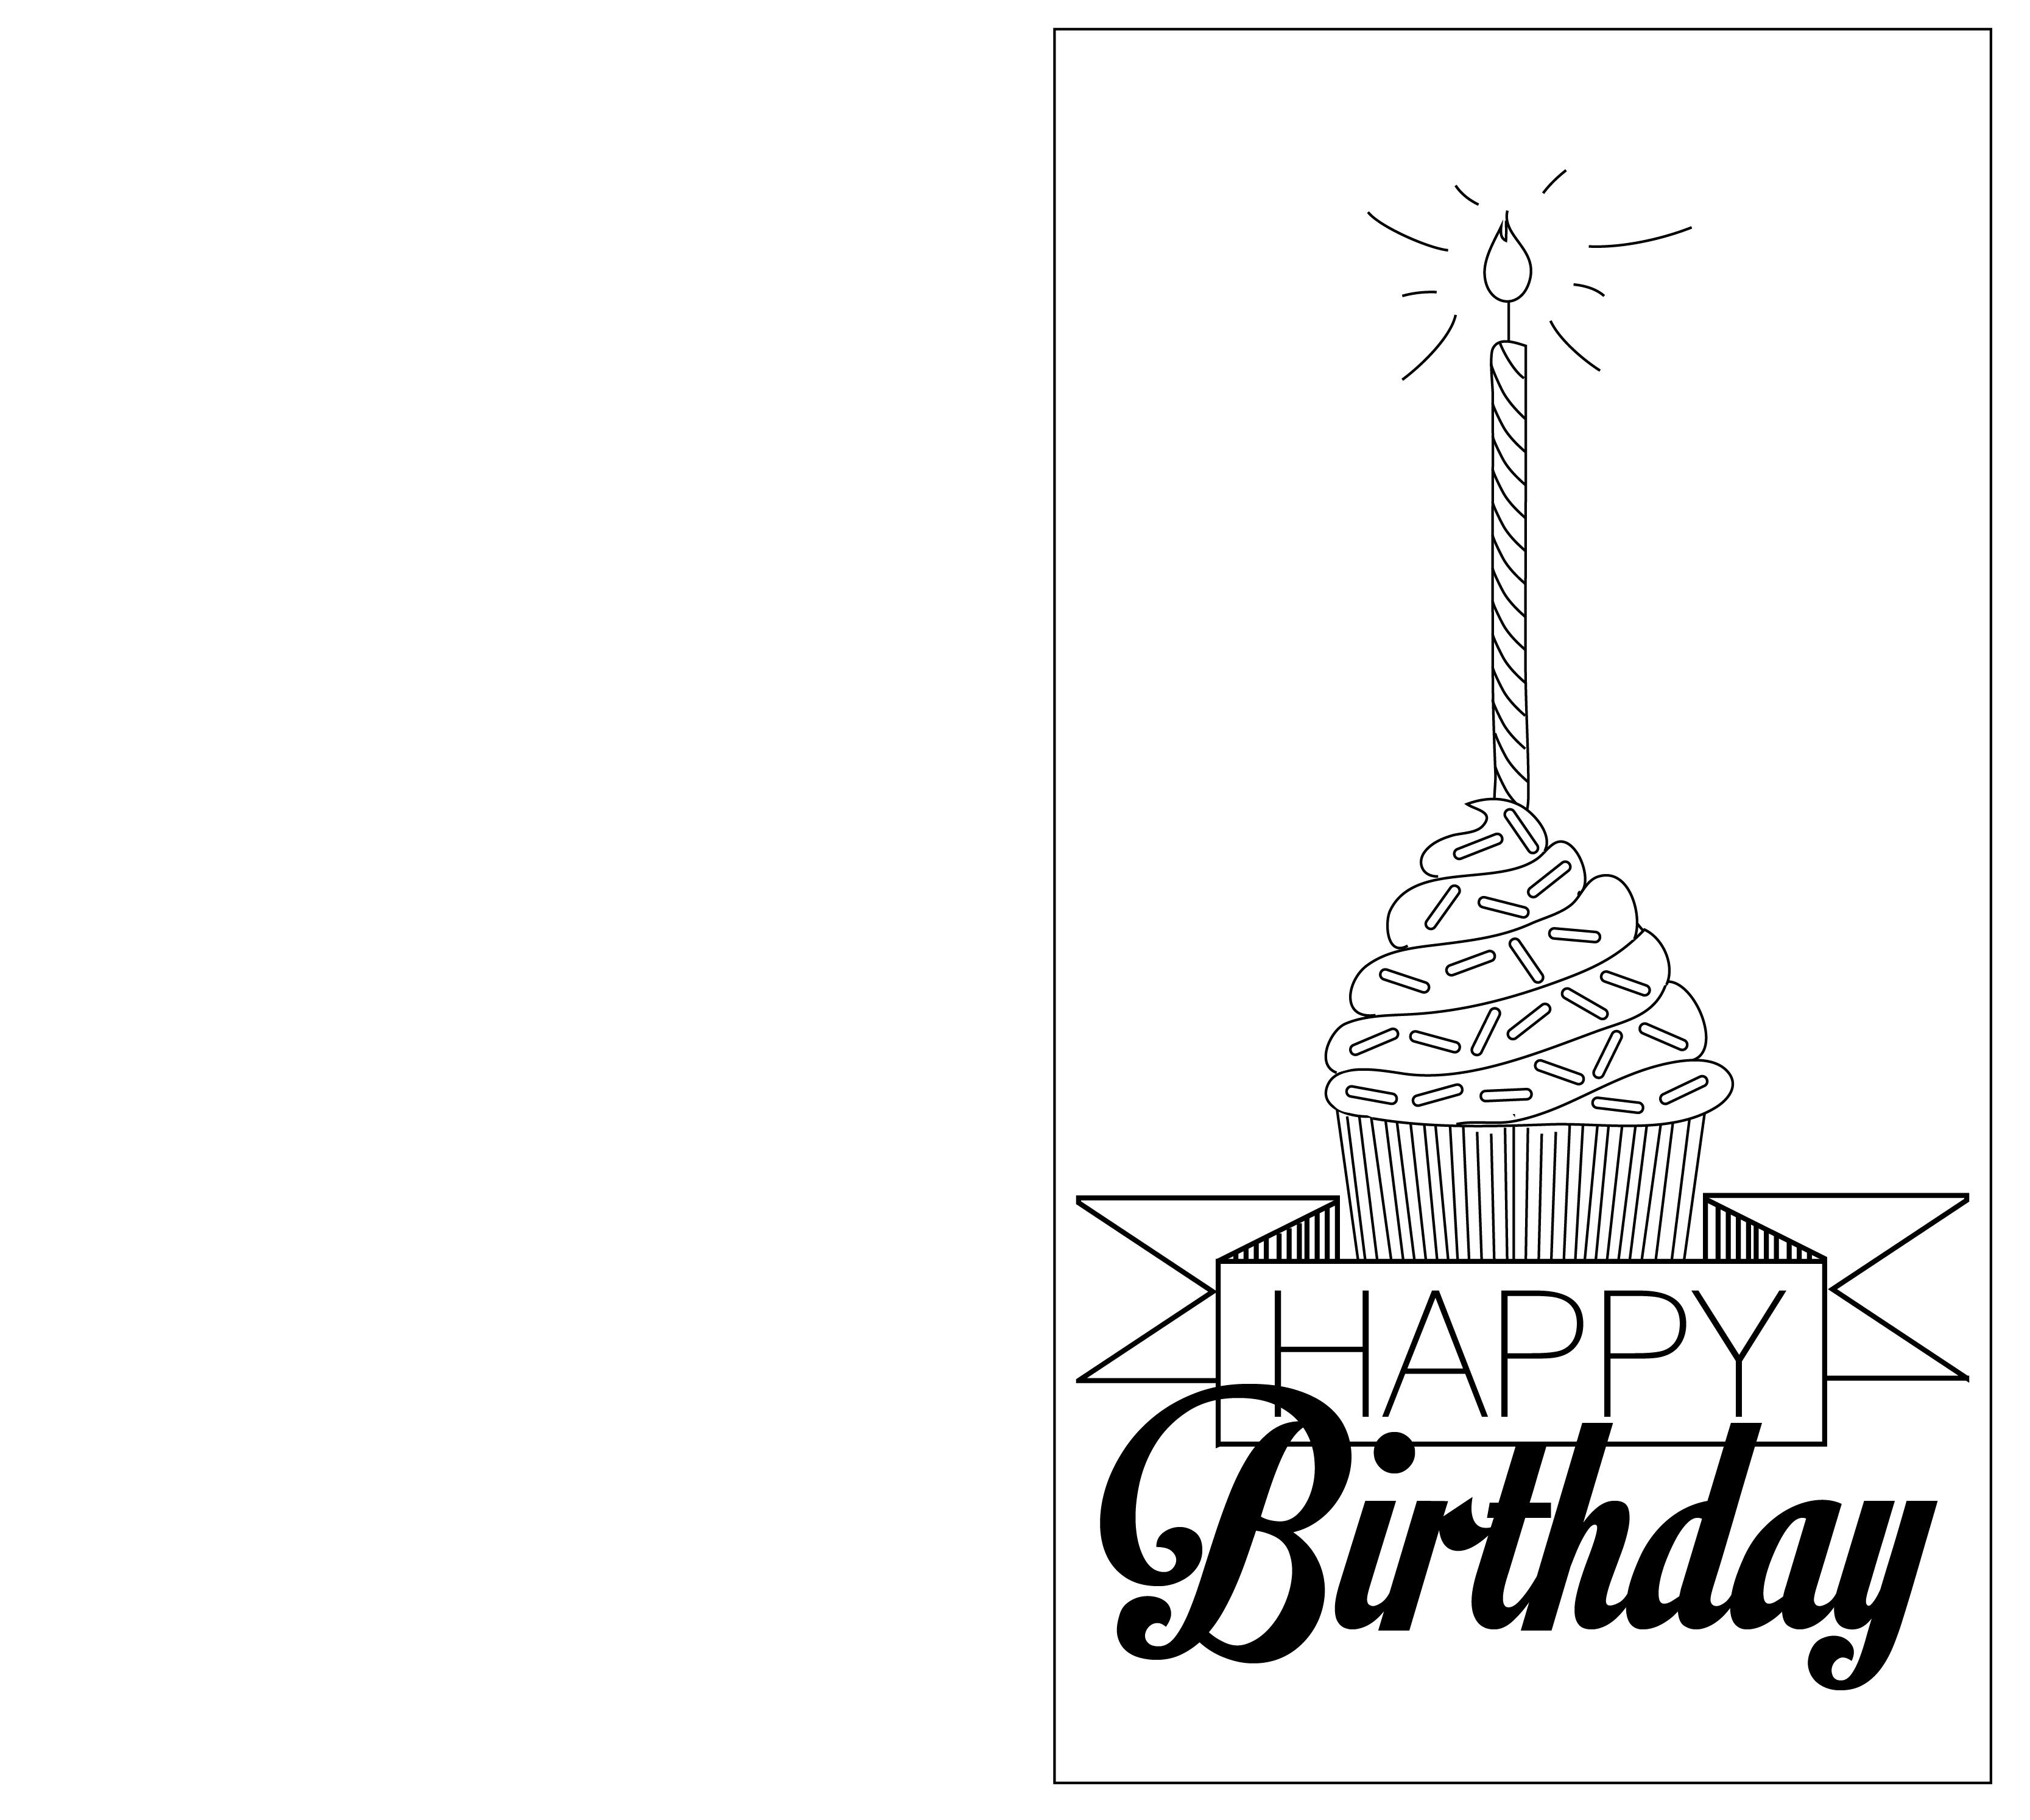 cupcake birthday card template ; print-your-own-birthday-card-template-elegant-print-out-black-and-white-birthday-cards-of-print-your-own-birthday-card-template